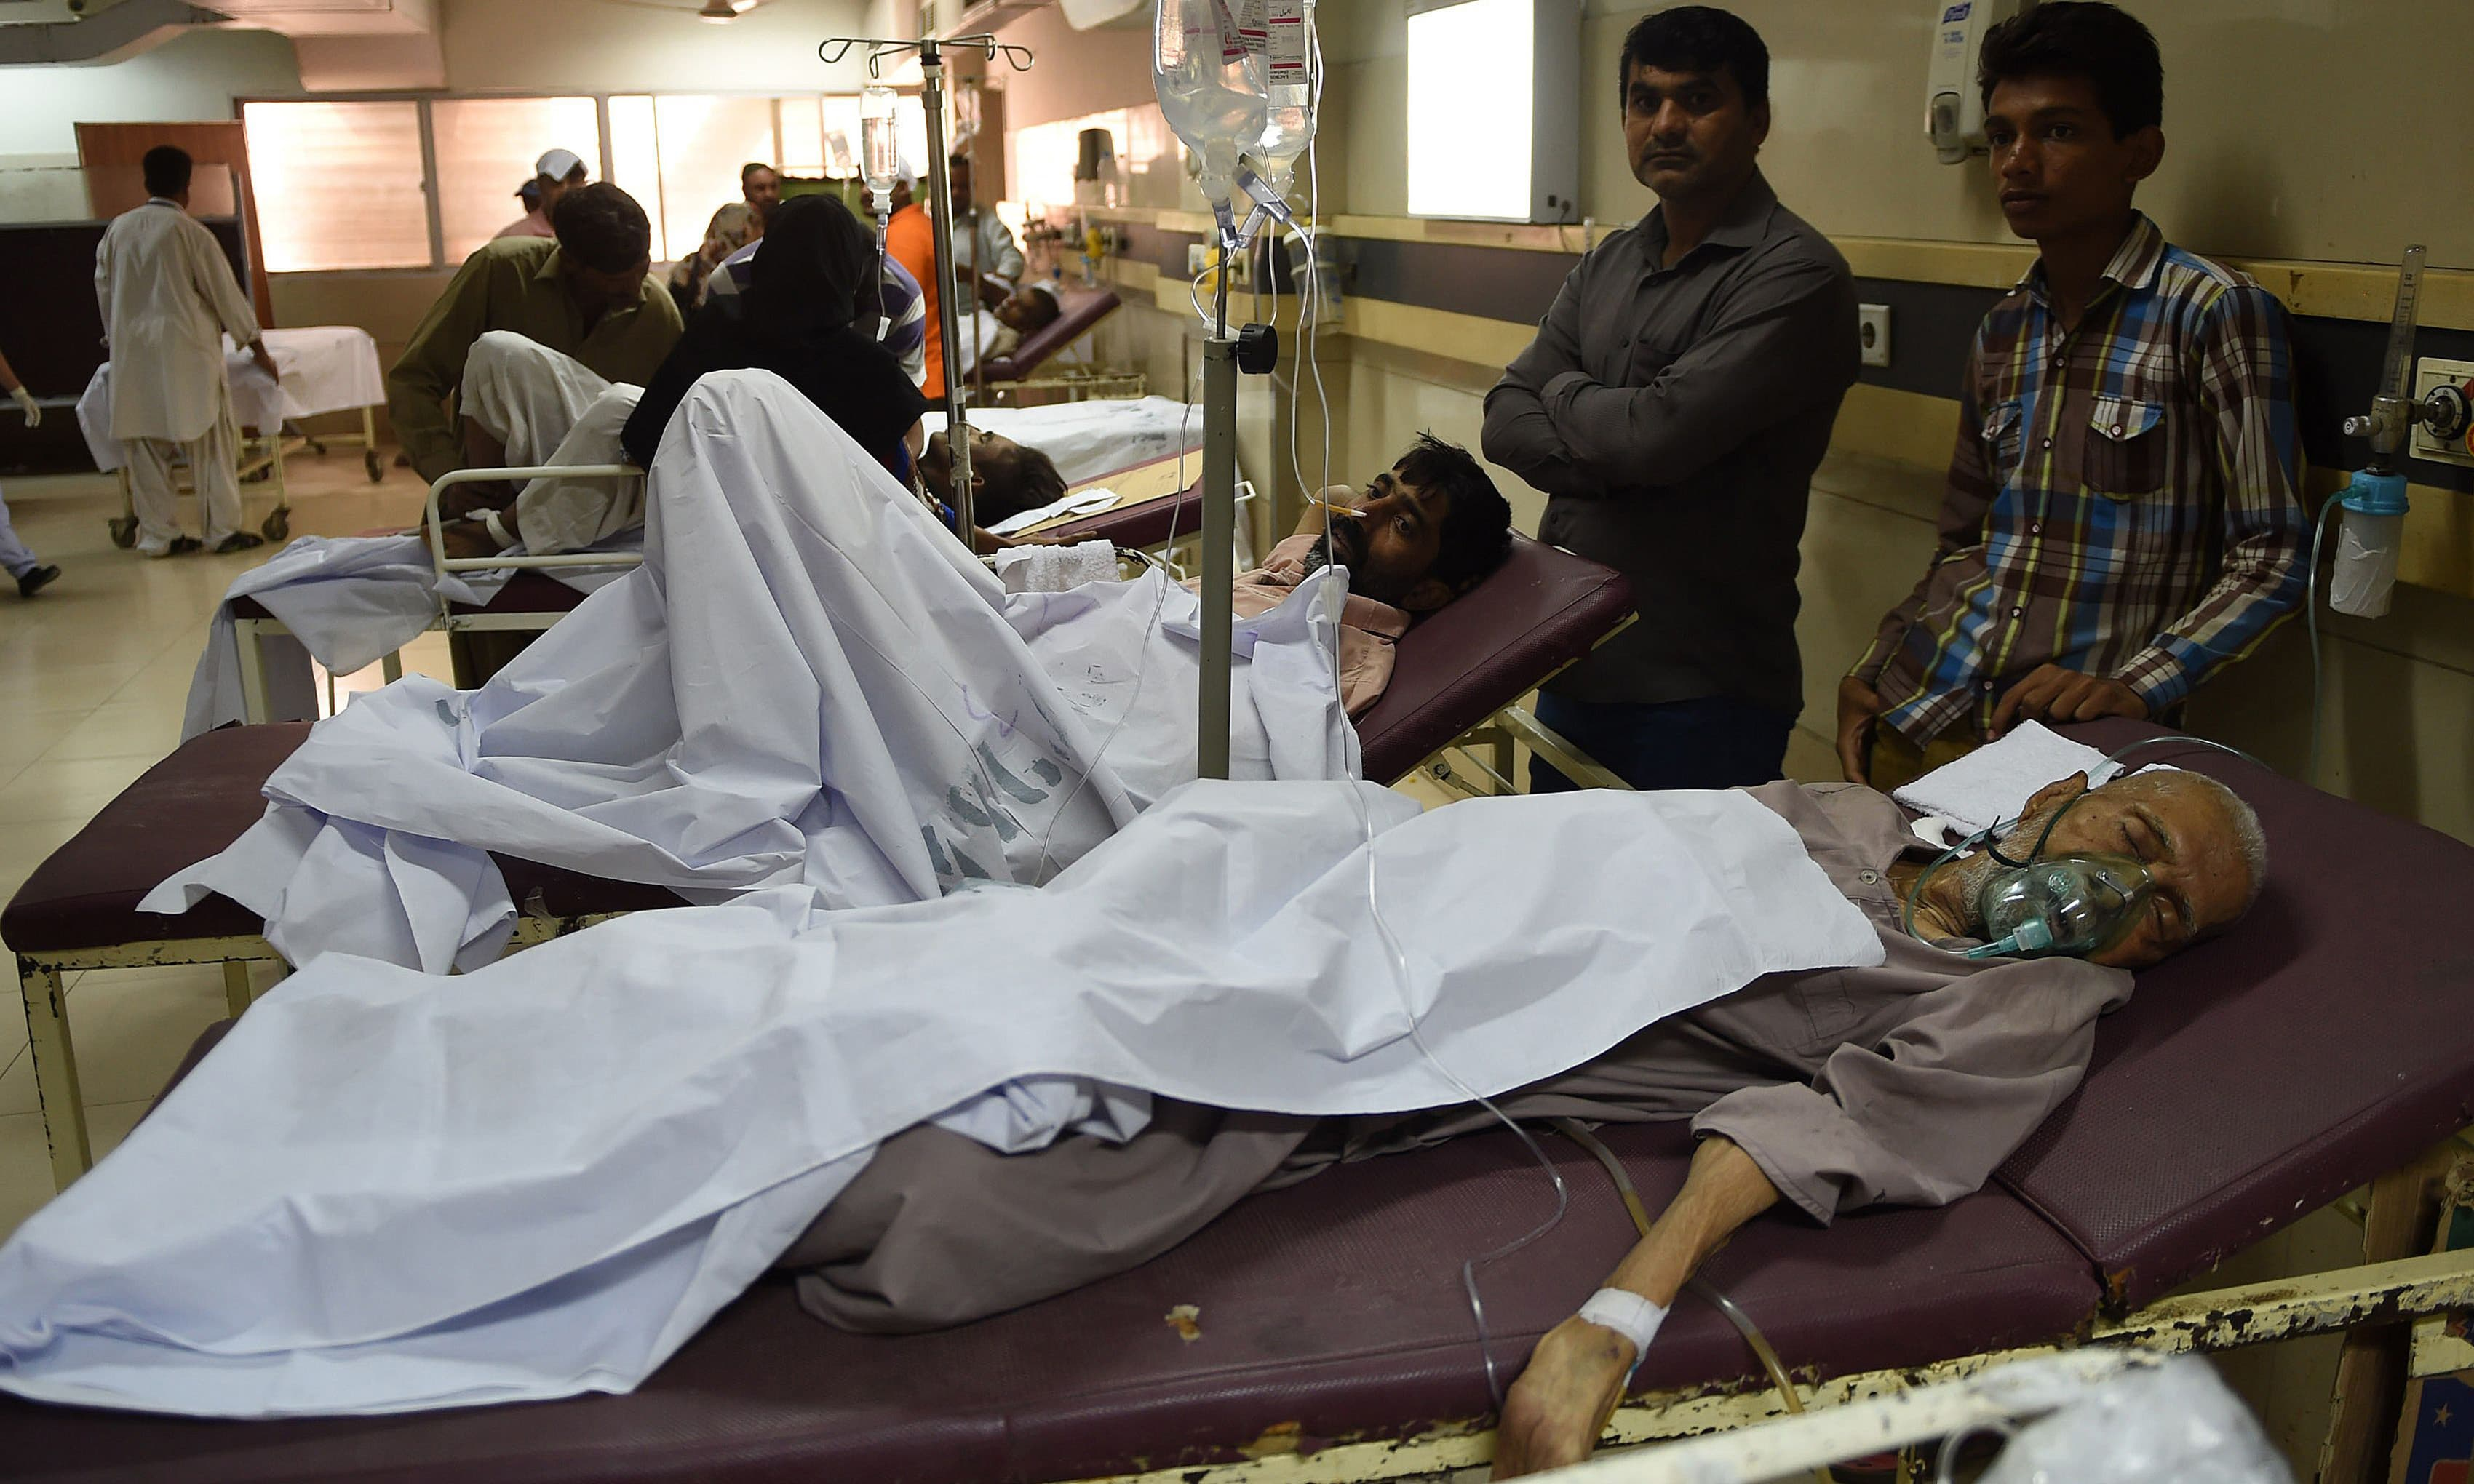 Heatstroke victims are treated at a government hospital in Karachi. — AFP